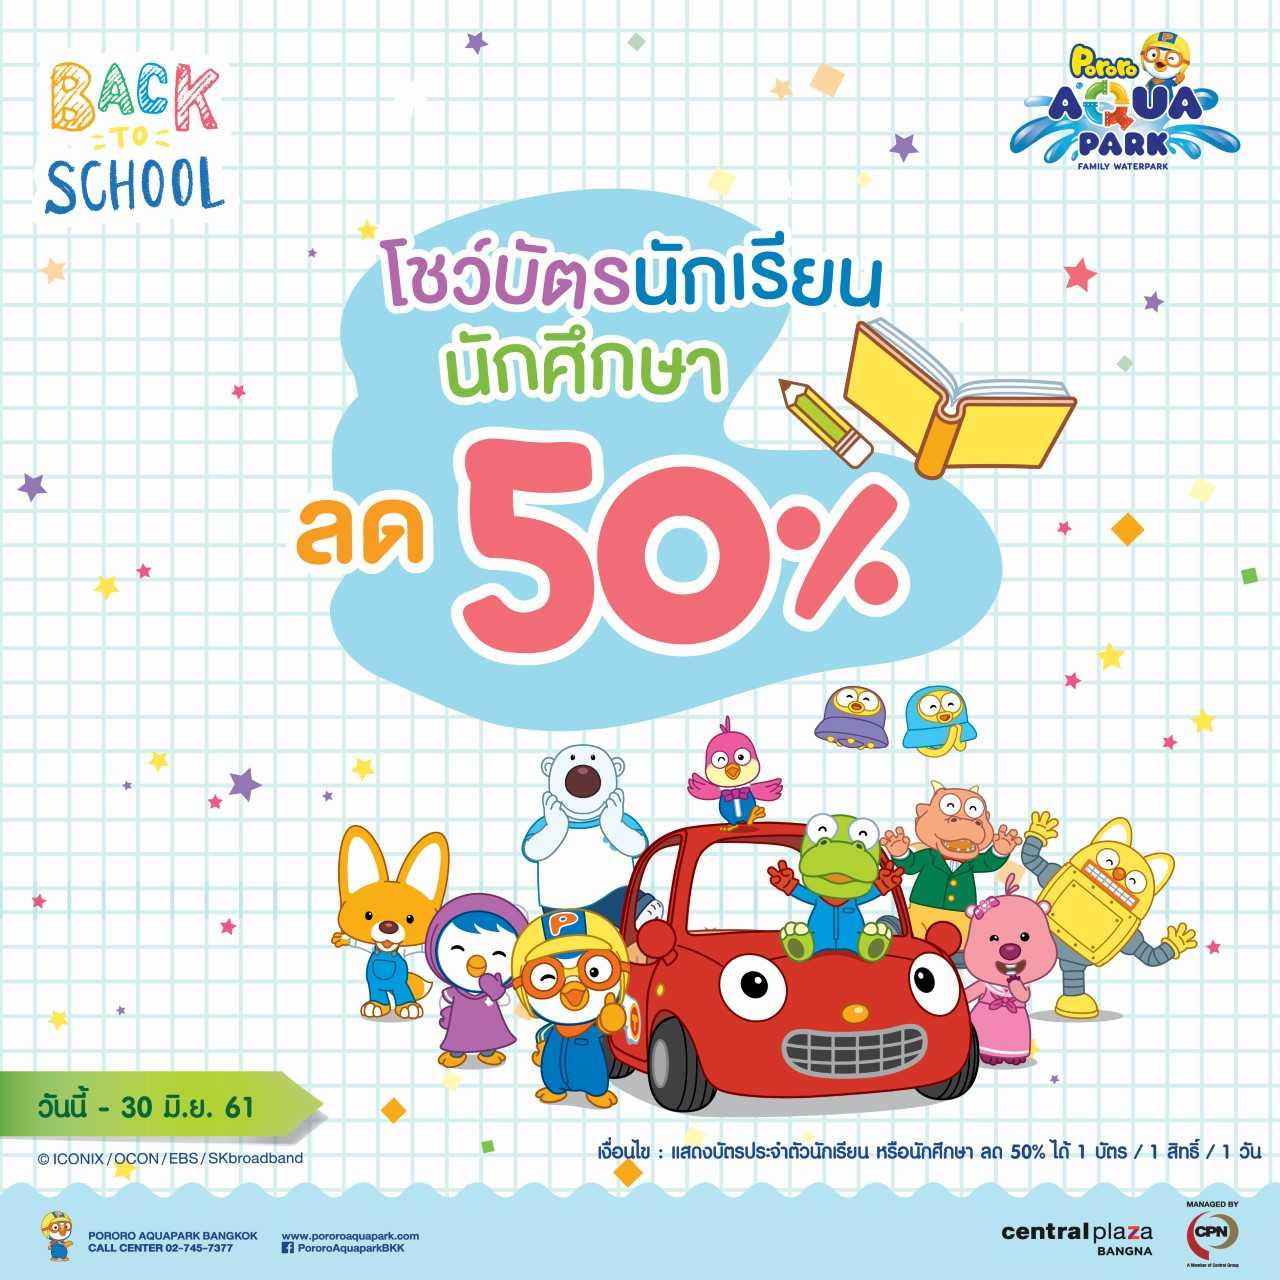 ฺBack to School ! Provide 50% off when customers show student card. | Pororo AquaPark Bangkok